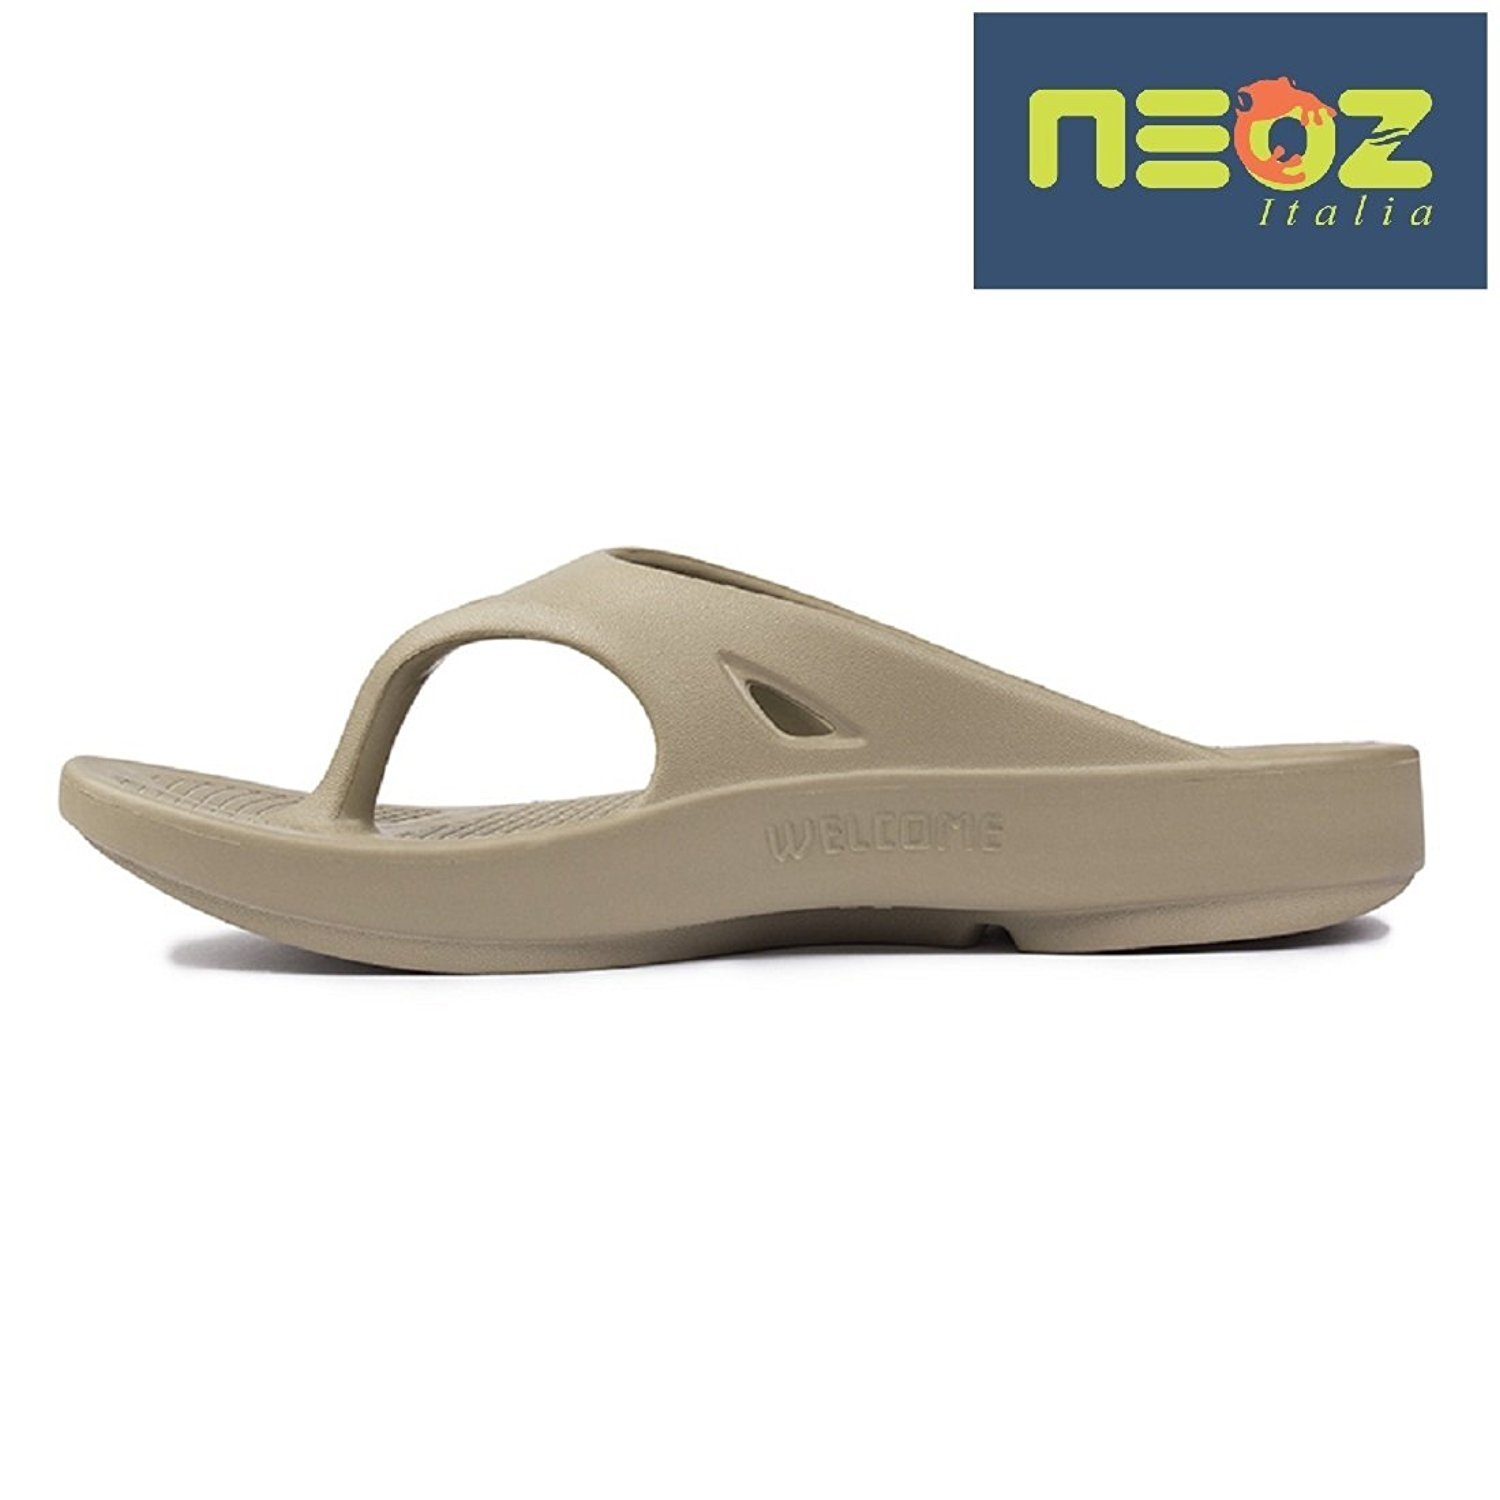 1033279ba Neoz Men's Levirex Carbon Casual Flip Flops: Buy Online at Low Prices in  India - Amazon.in